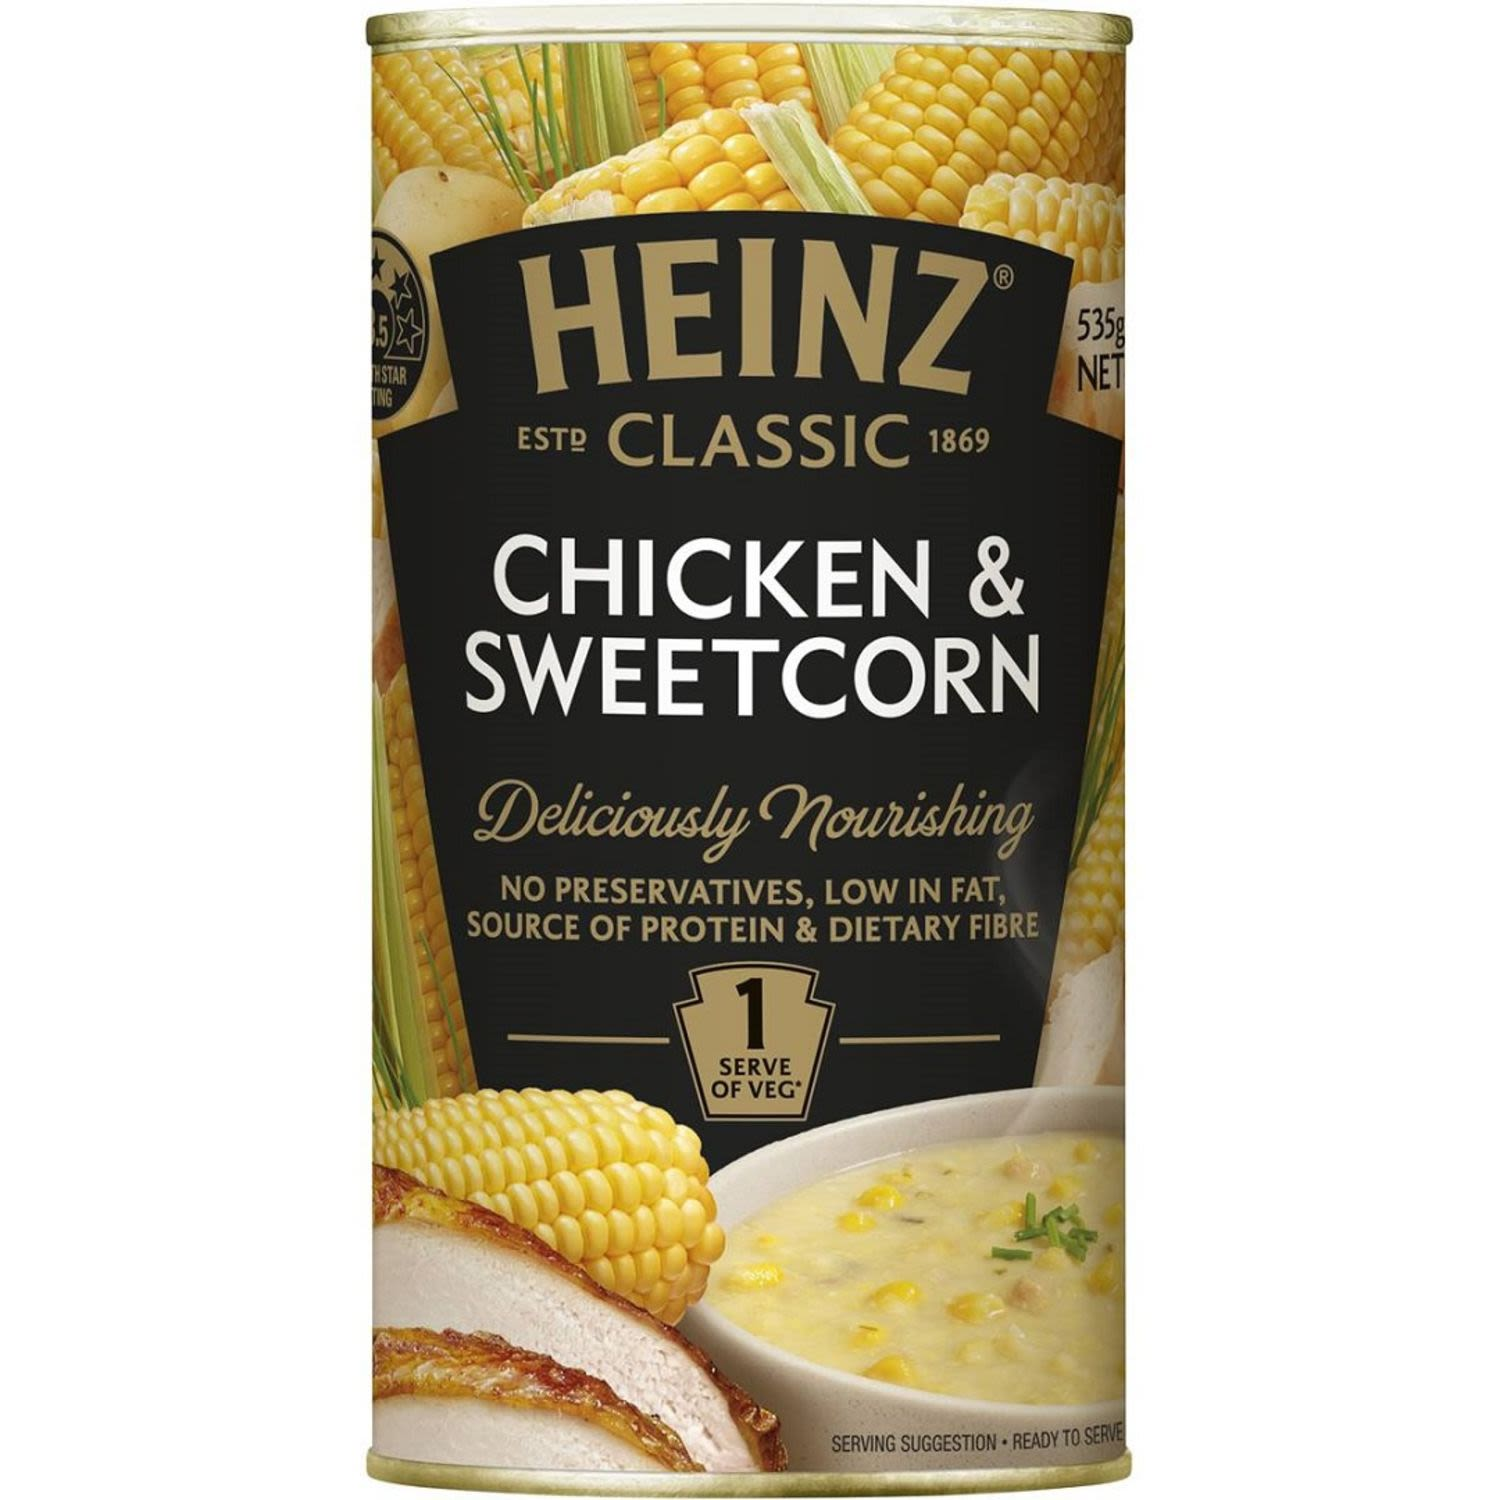 Heinz Classic Canned Soup Chicken & Sweetcorn, 535 Gram